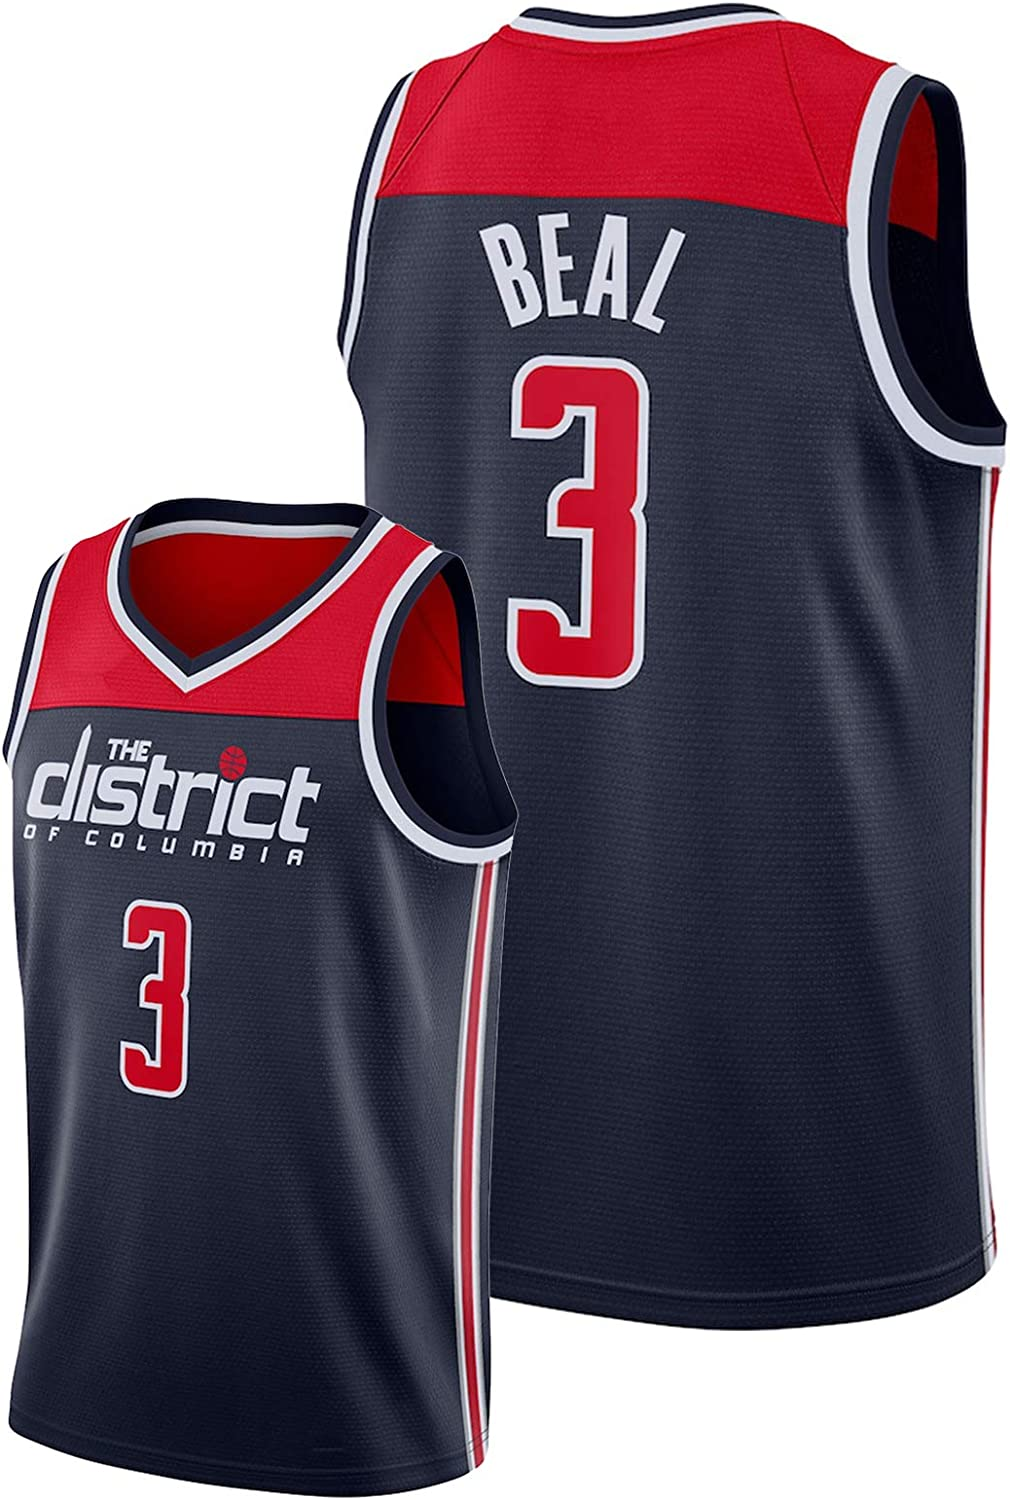 Br dley Be l #3 Mens Basketball Jersey,Wiz rds 2020-21 City ...